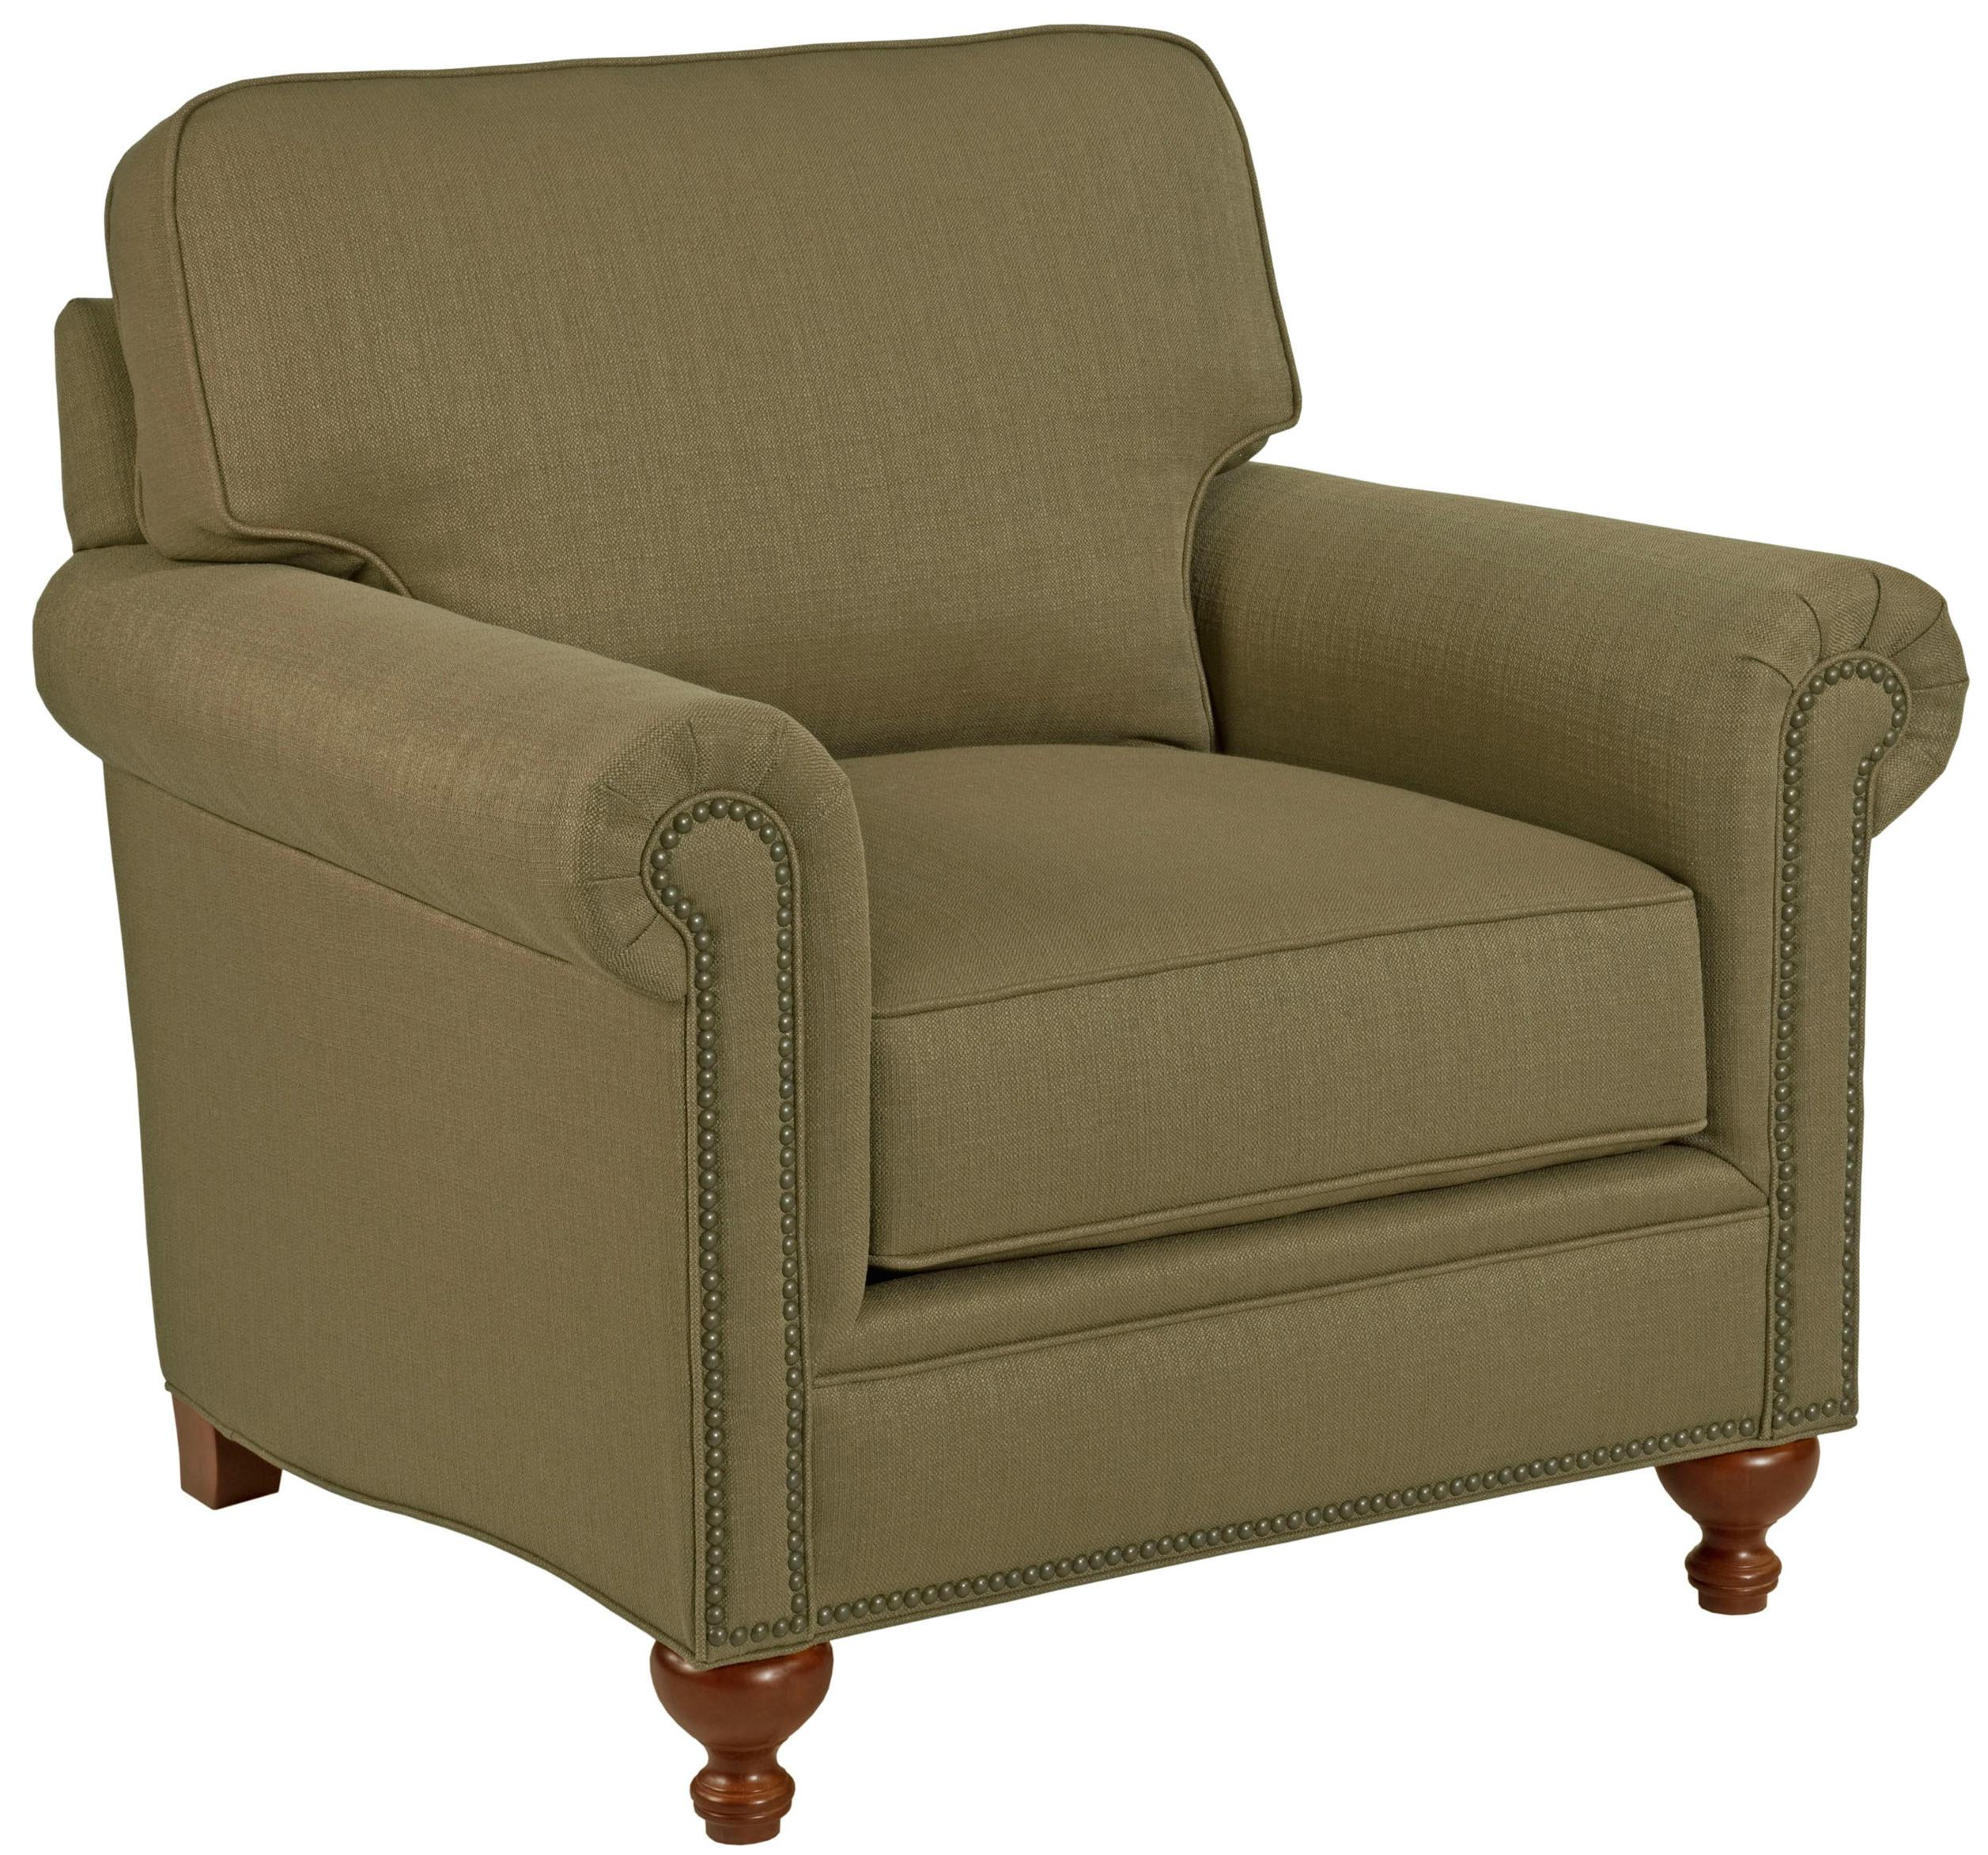 Broyhill Furniture Harrison Traditional Style Chair With